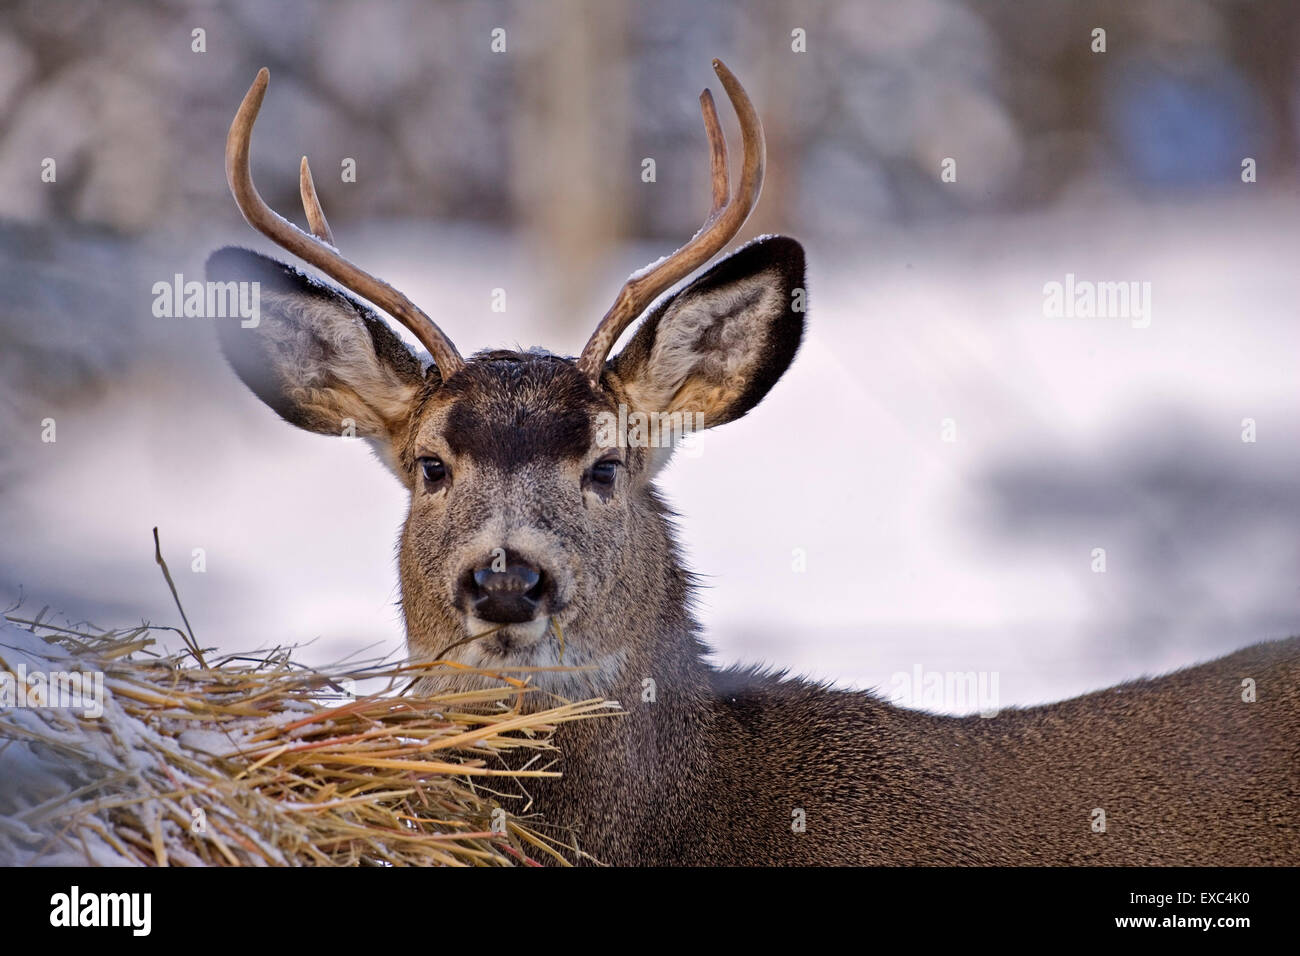 Mule Deer Buck in winter, standing  by Hay bale. - Stock Image